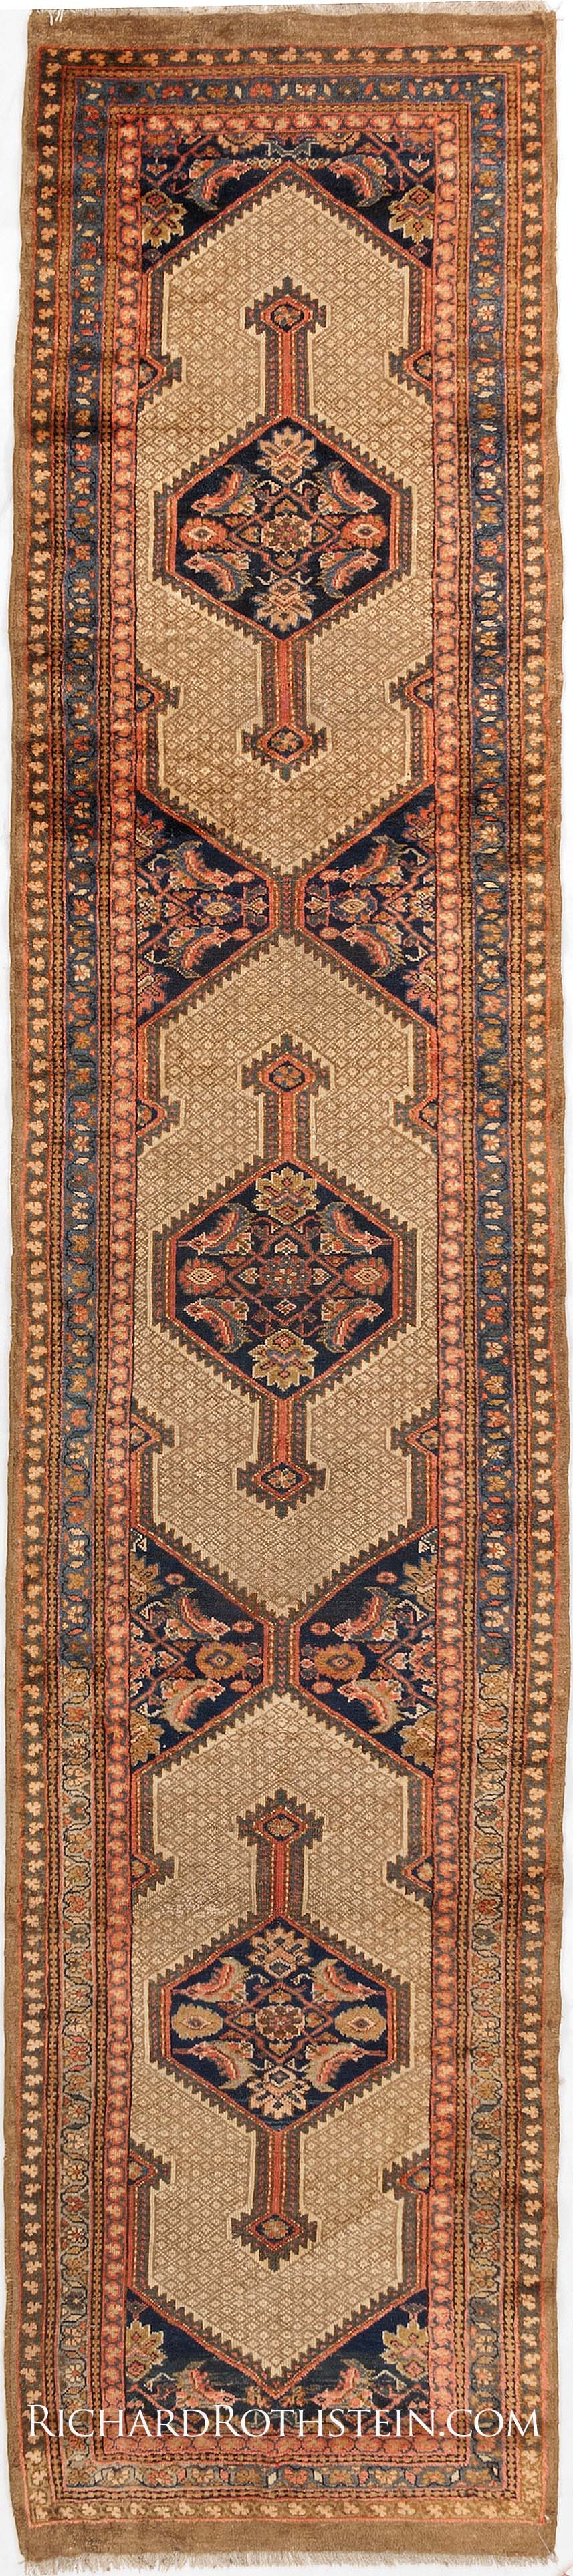 antique serab runner oriental carpet antrr887 | lionel serab rugs